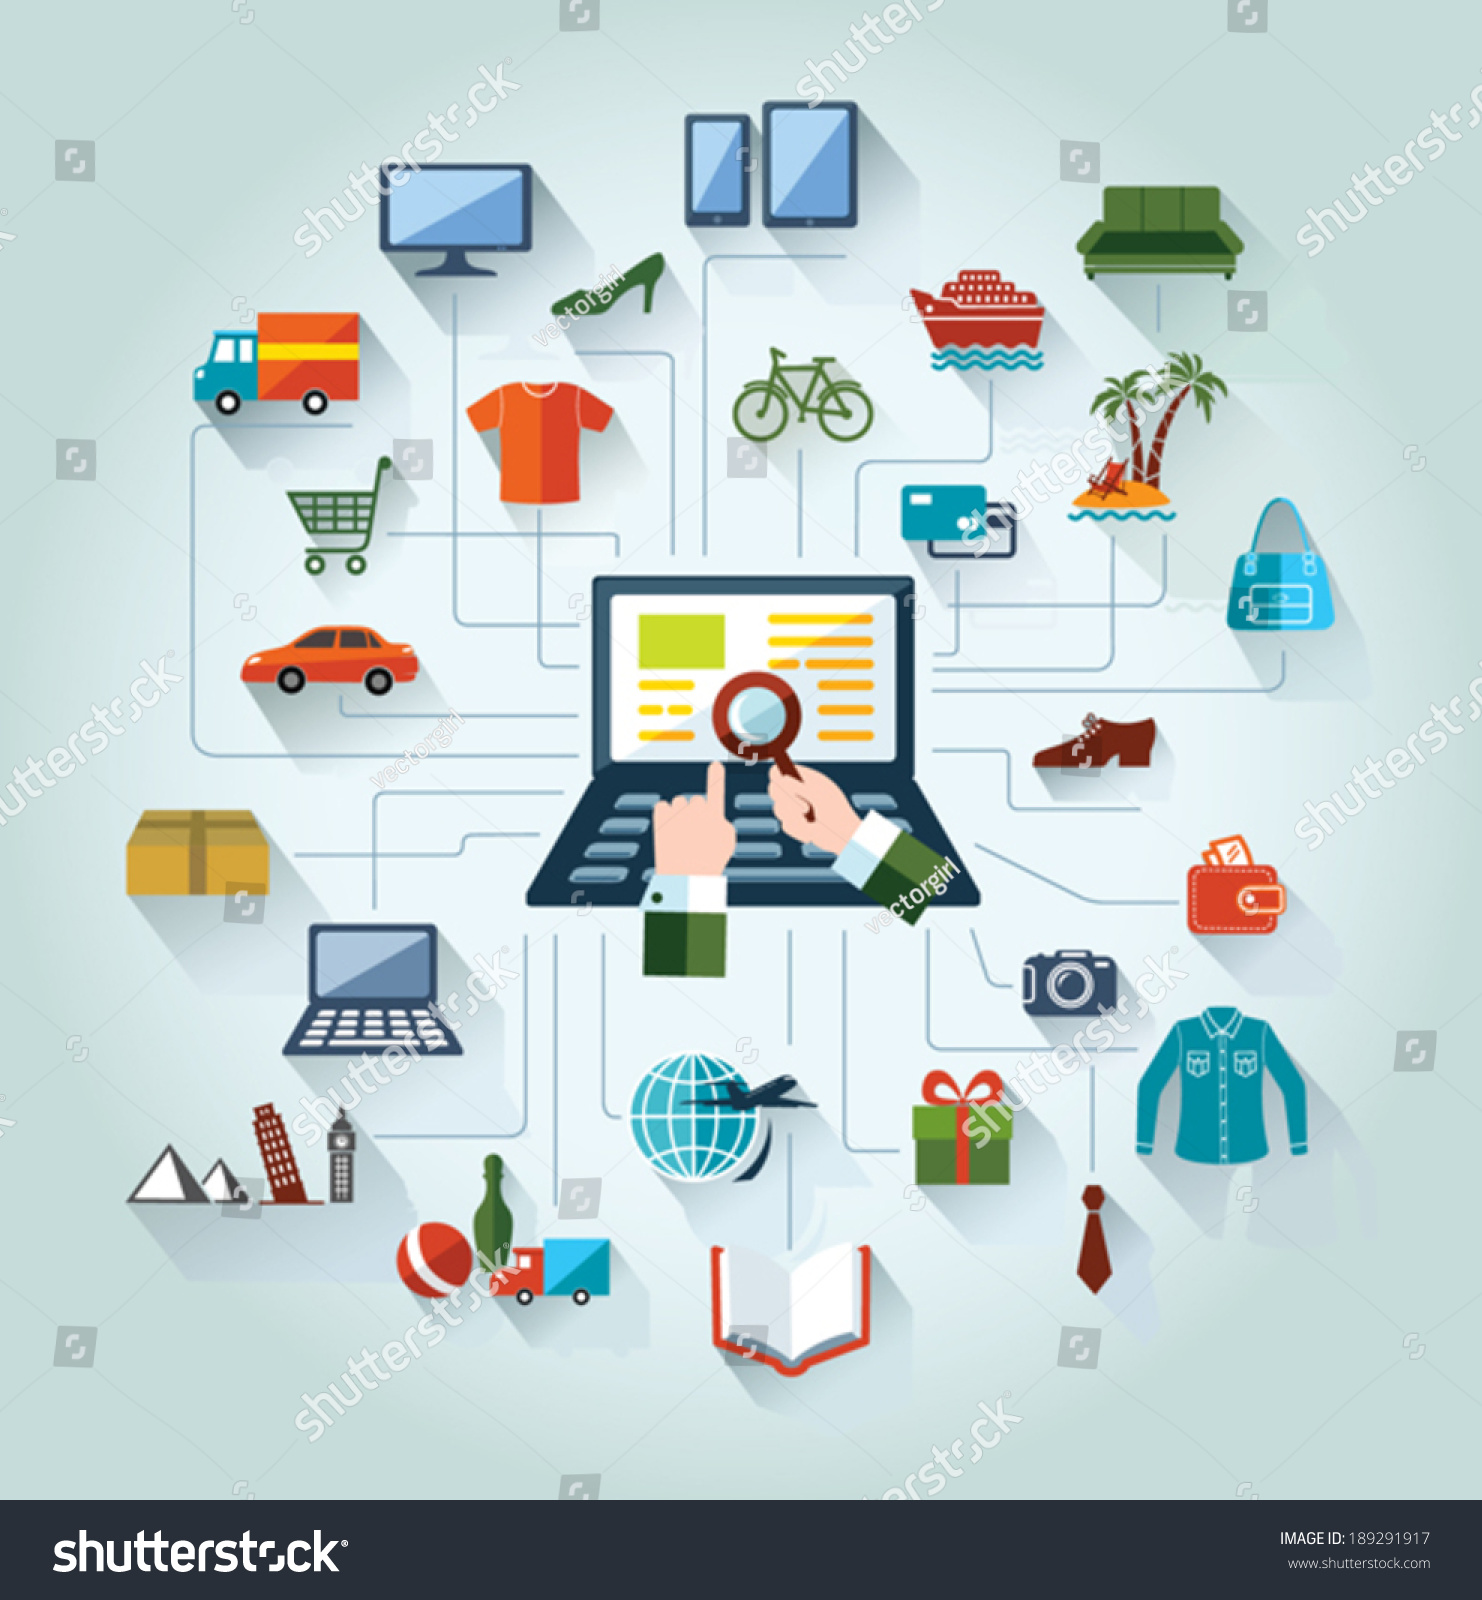 stock-vector-flat-and-web-design-banner-online-shopping-and-business-conceptual-background-189291917.jpg